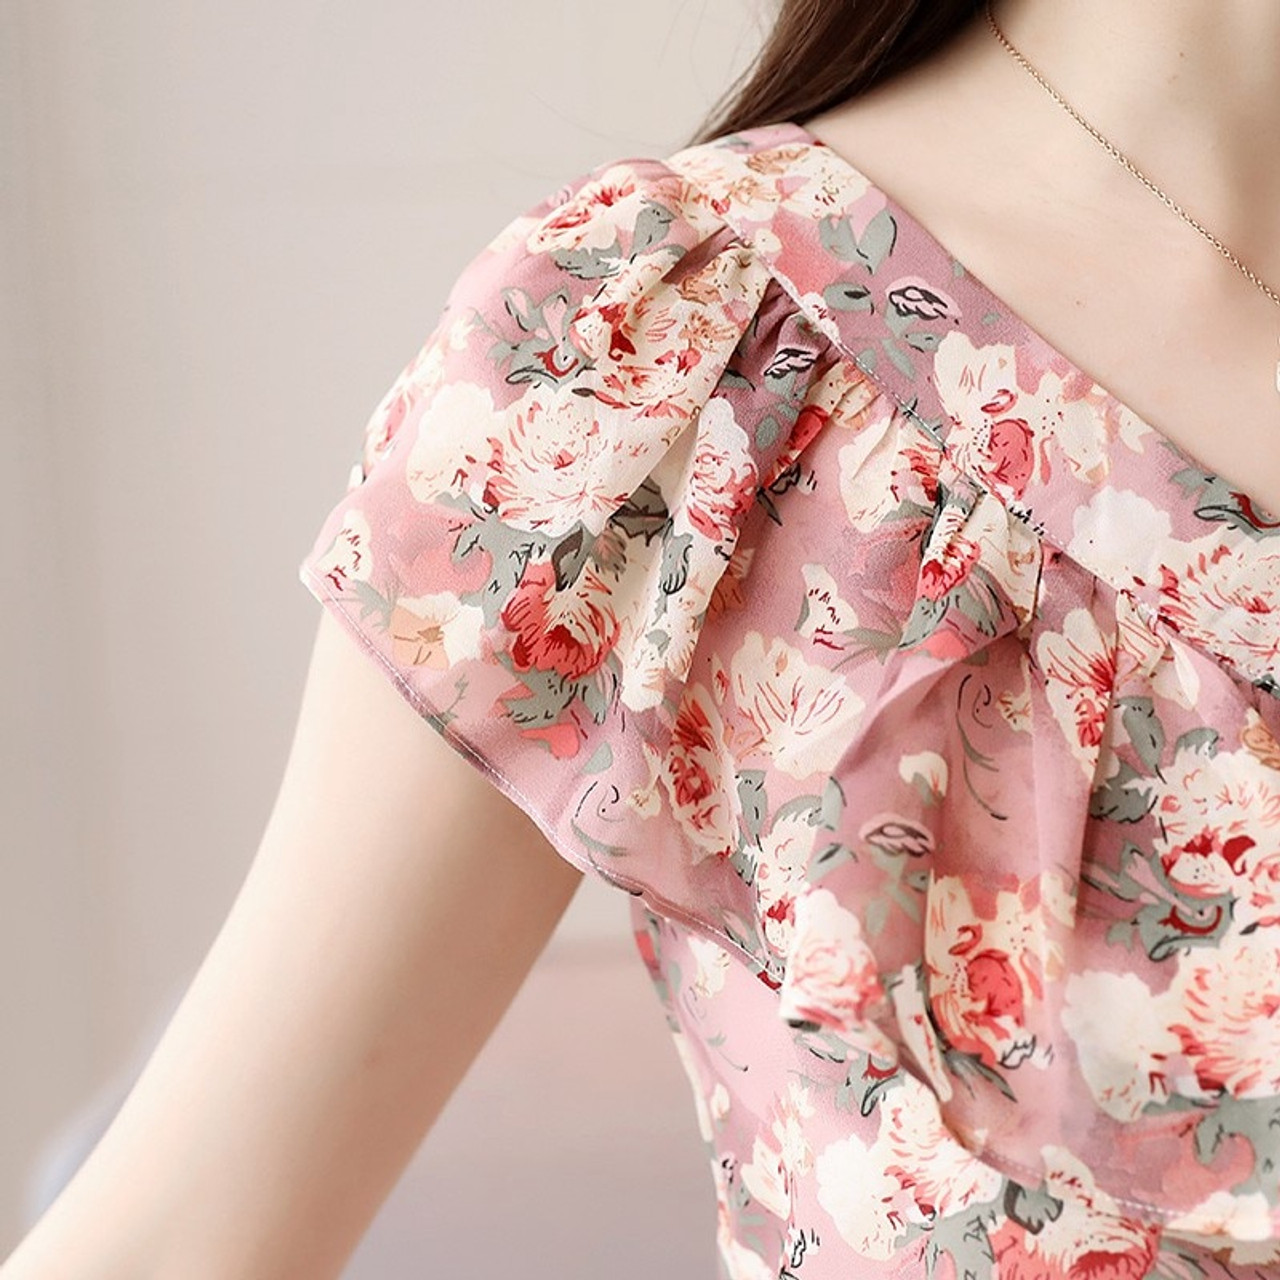 18f00ff9d476 ... 2018 Fashion Summer Blouses Women Shirts Plus Size Floral Tops Ladies  Short Sleeve Chiffon Blusas Feminina ...